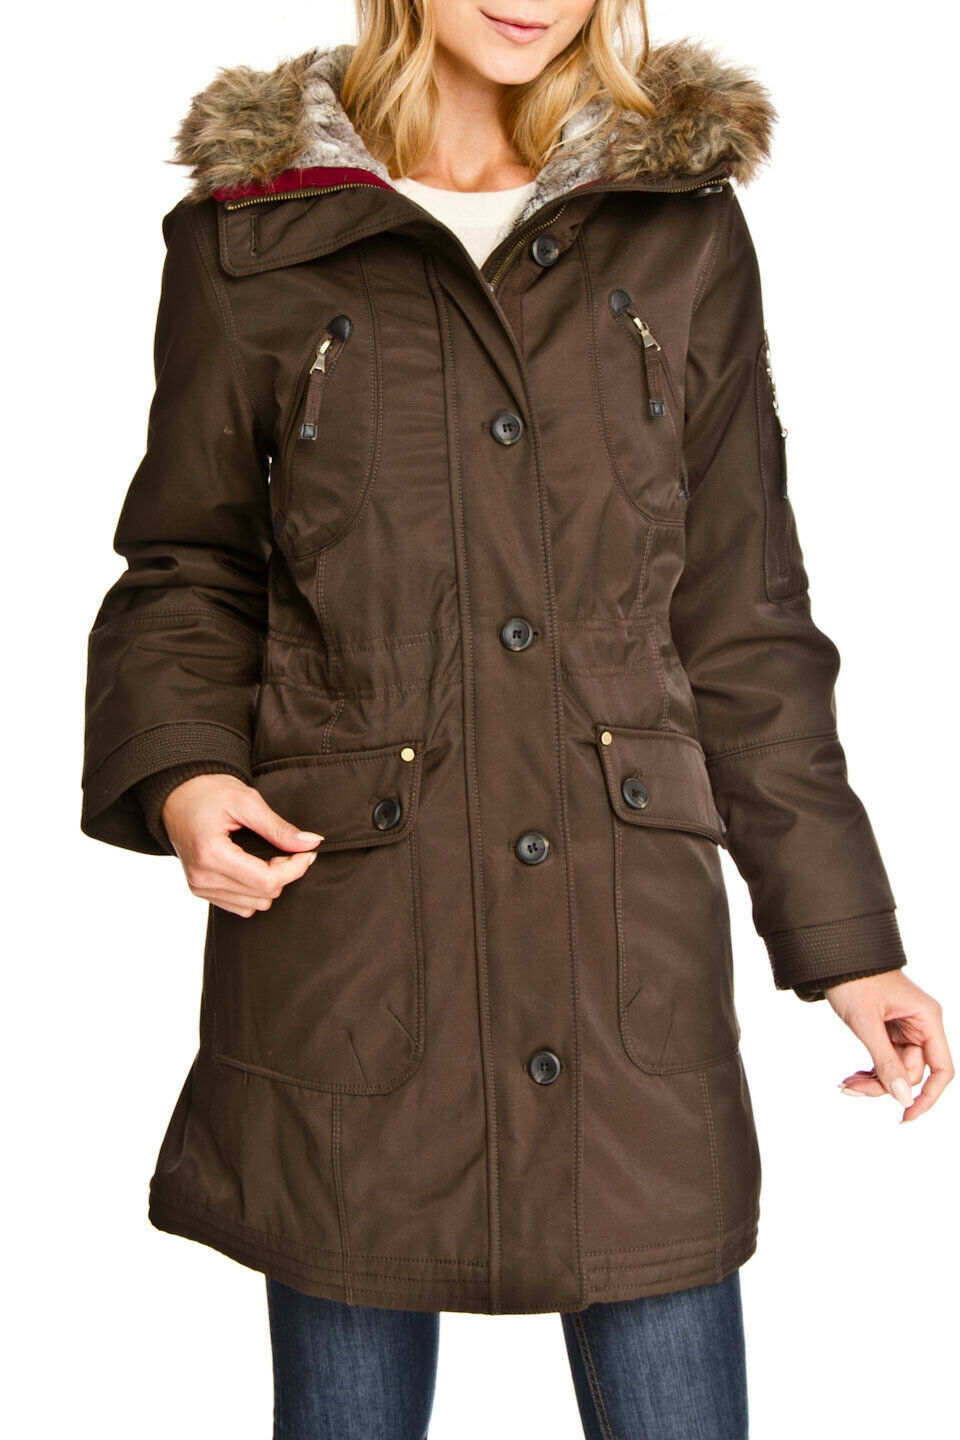 1 Madison Women's Expedition coat for sale online in 2020